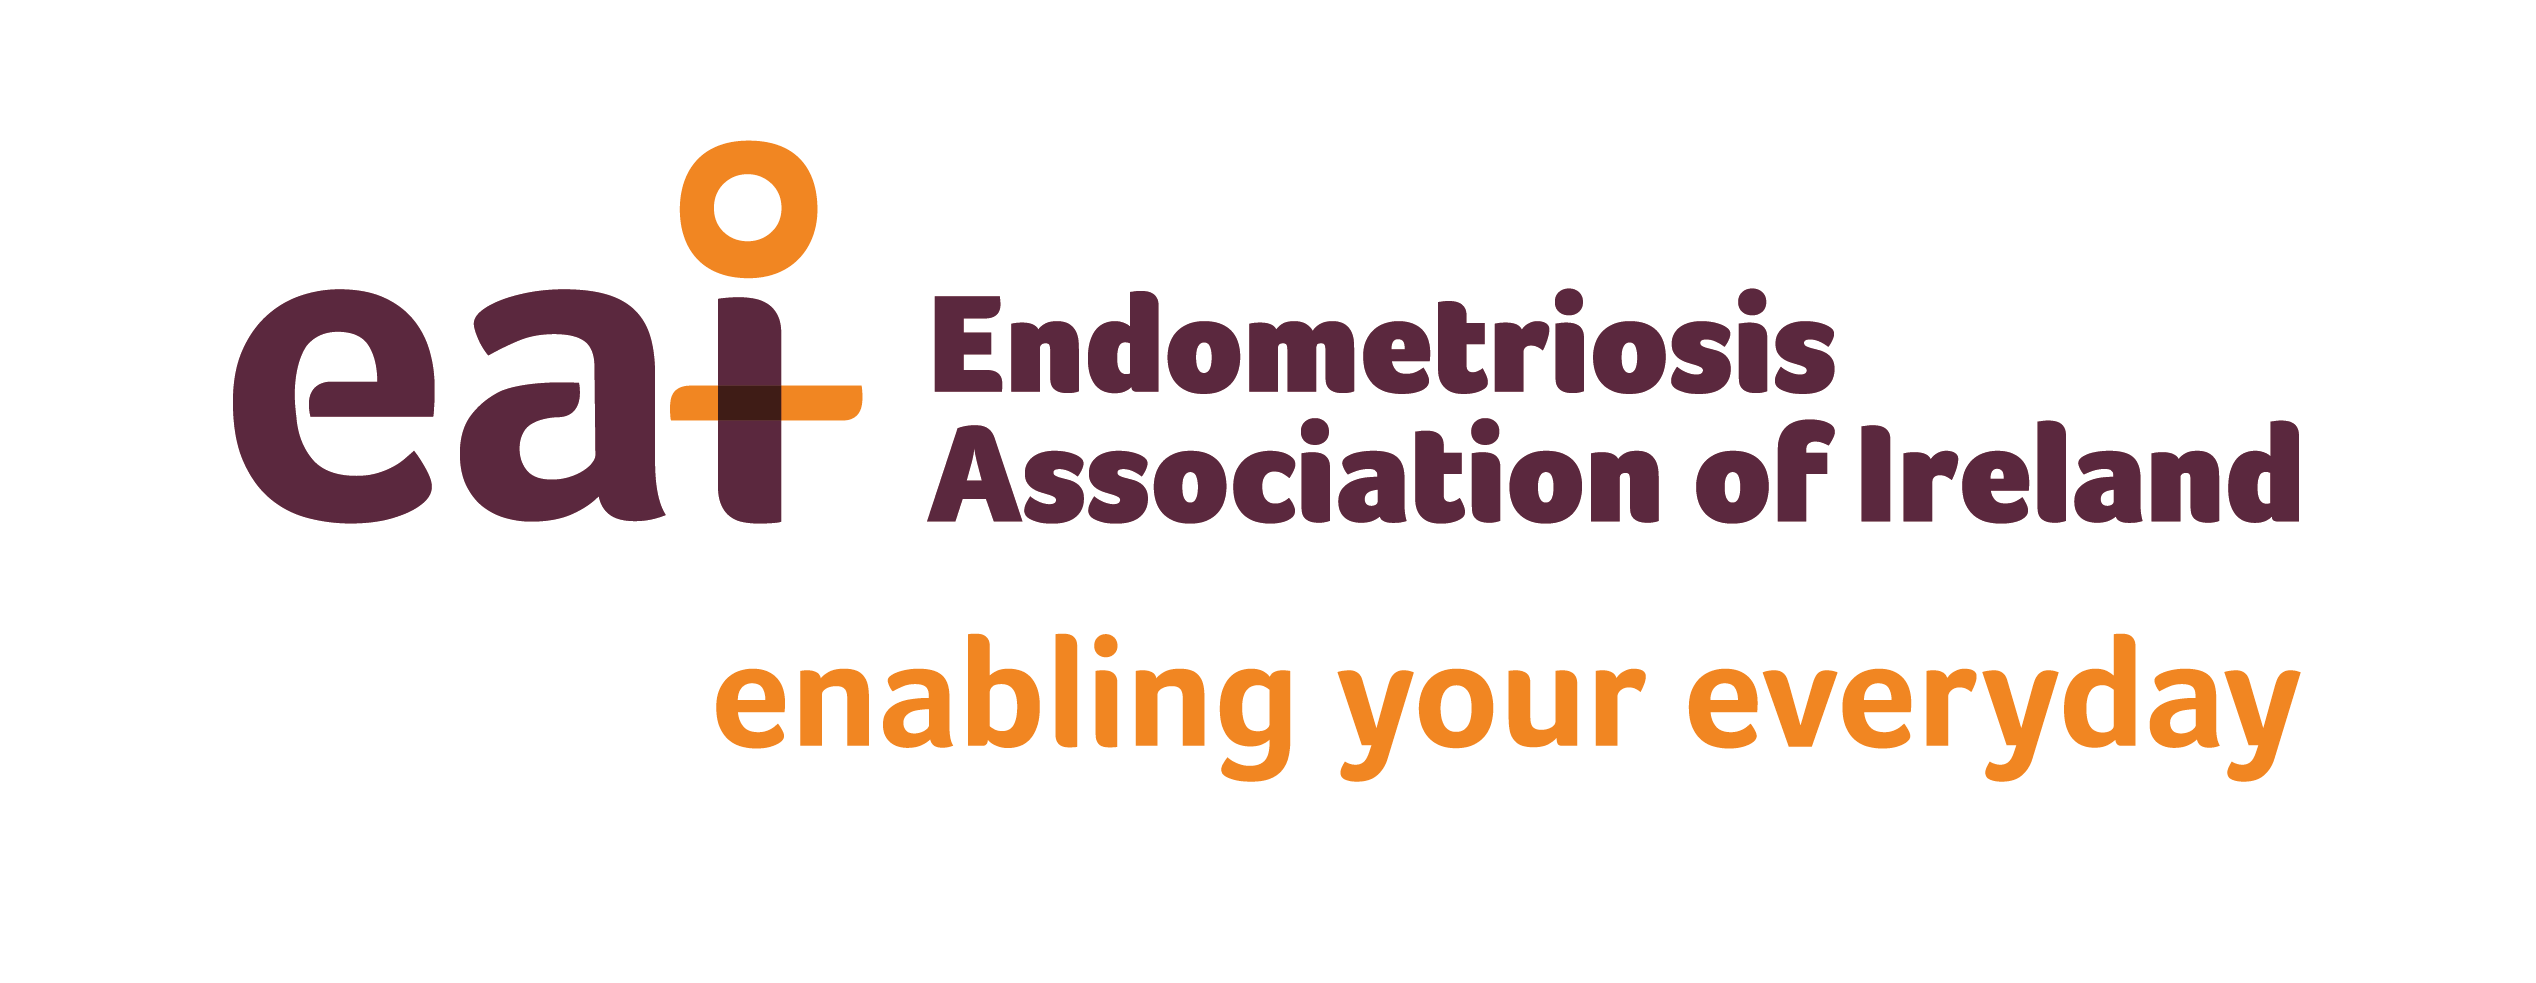 EAI Endometriosis Association of Ireland